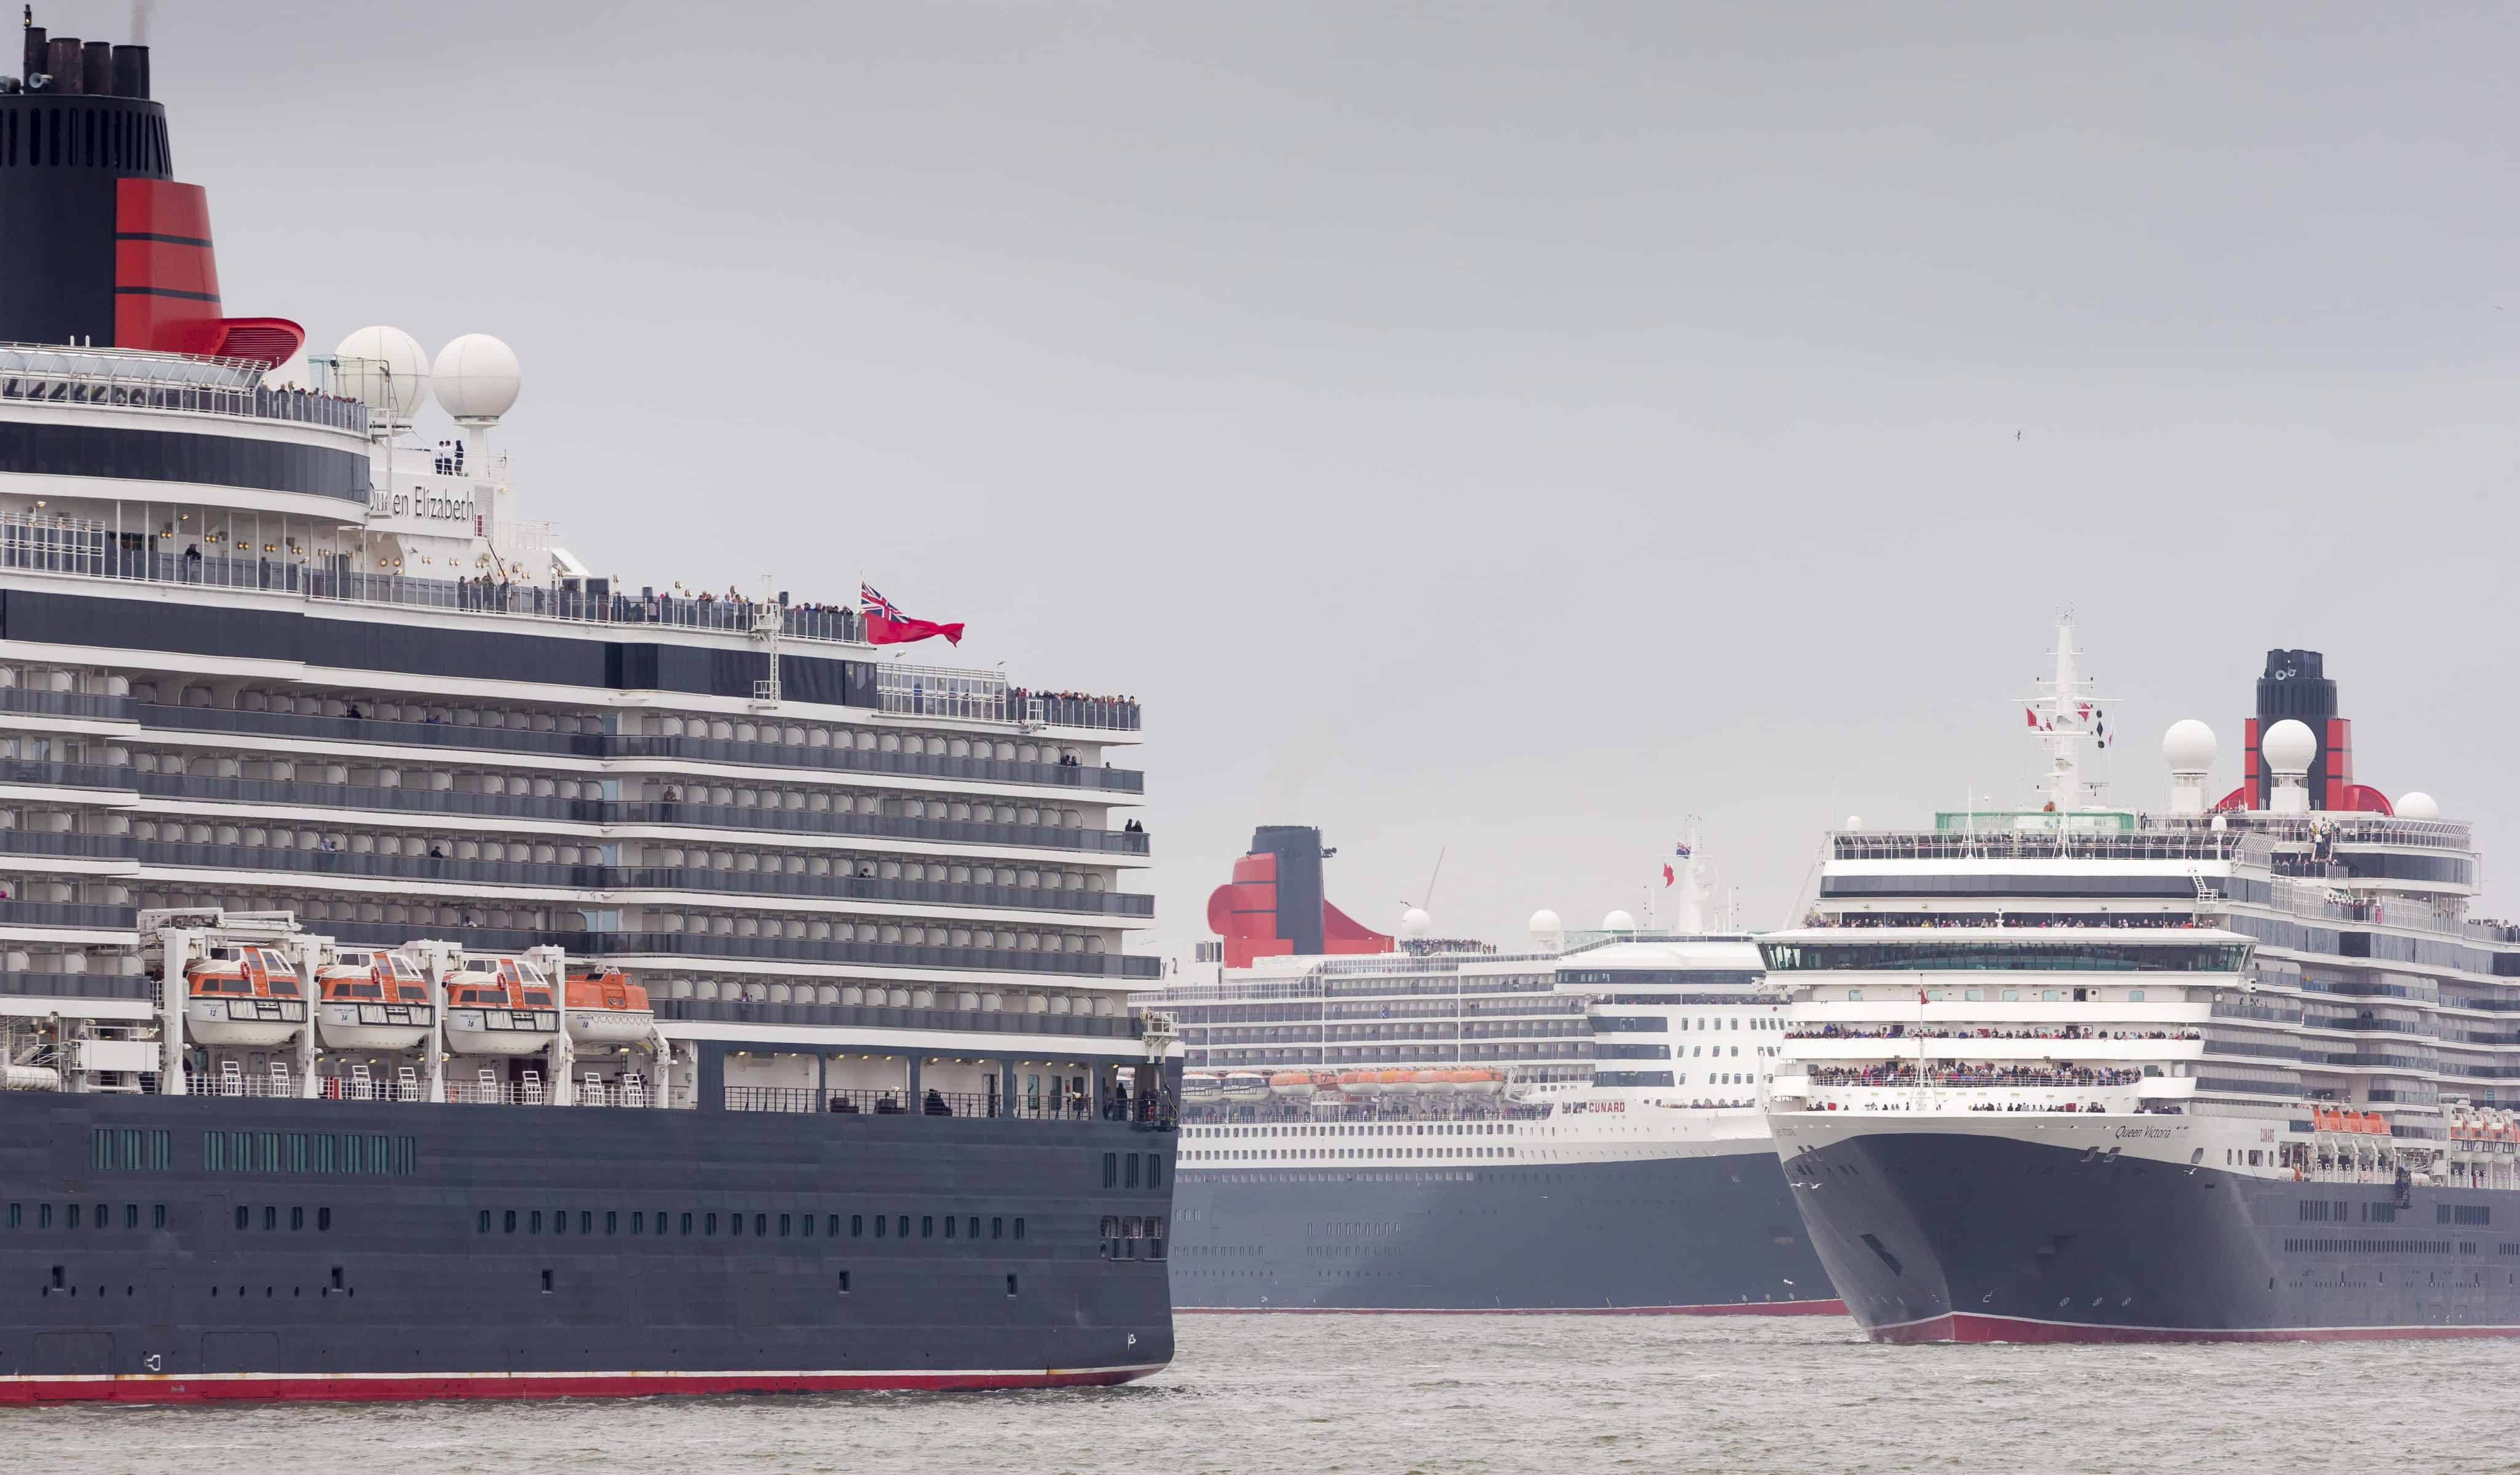 Cunard's fleet gather together in spectacular fashion in Liverpool, its spiritual home, as the company marked its 175th anniversary. Left to right: Queen Elizabeth, Queen Mary 2 and Queen Victoria. The historic lines' three ships, the largest passenger ships ever to muster together on the River Mersey, lined up just 130 metres apart. The vessels lined up three abreast at Liverpool's Pier Head beside its iconic Three Graces: The Royal Liver Building, The Cunard Building and The Port of Liverpool Building. Picture date Monday 25th May, 2015. Picture by Christopher Ison.